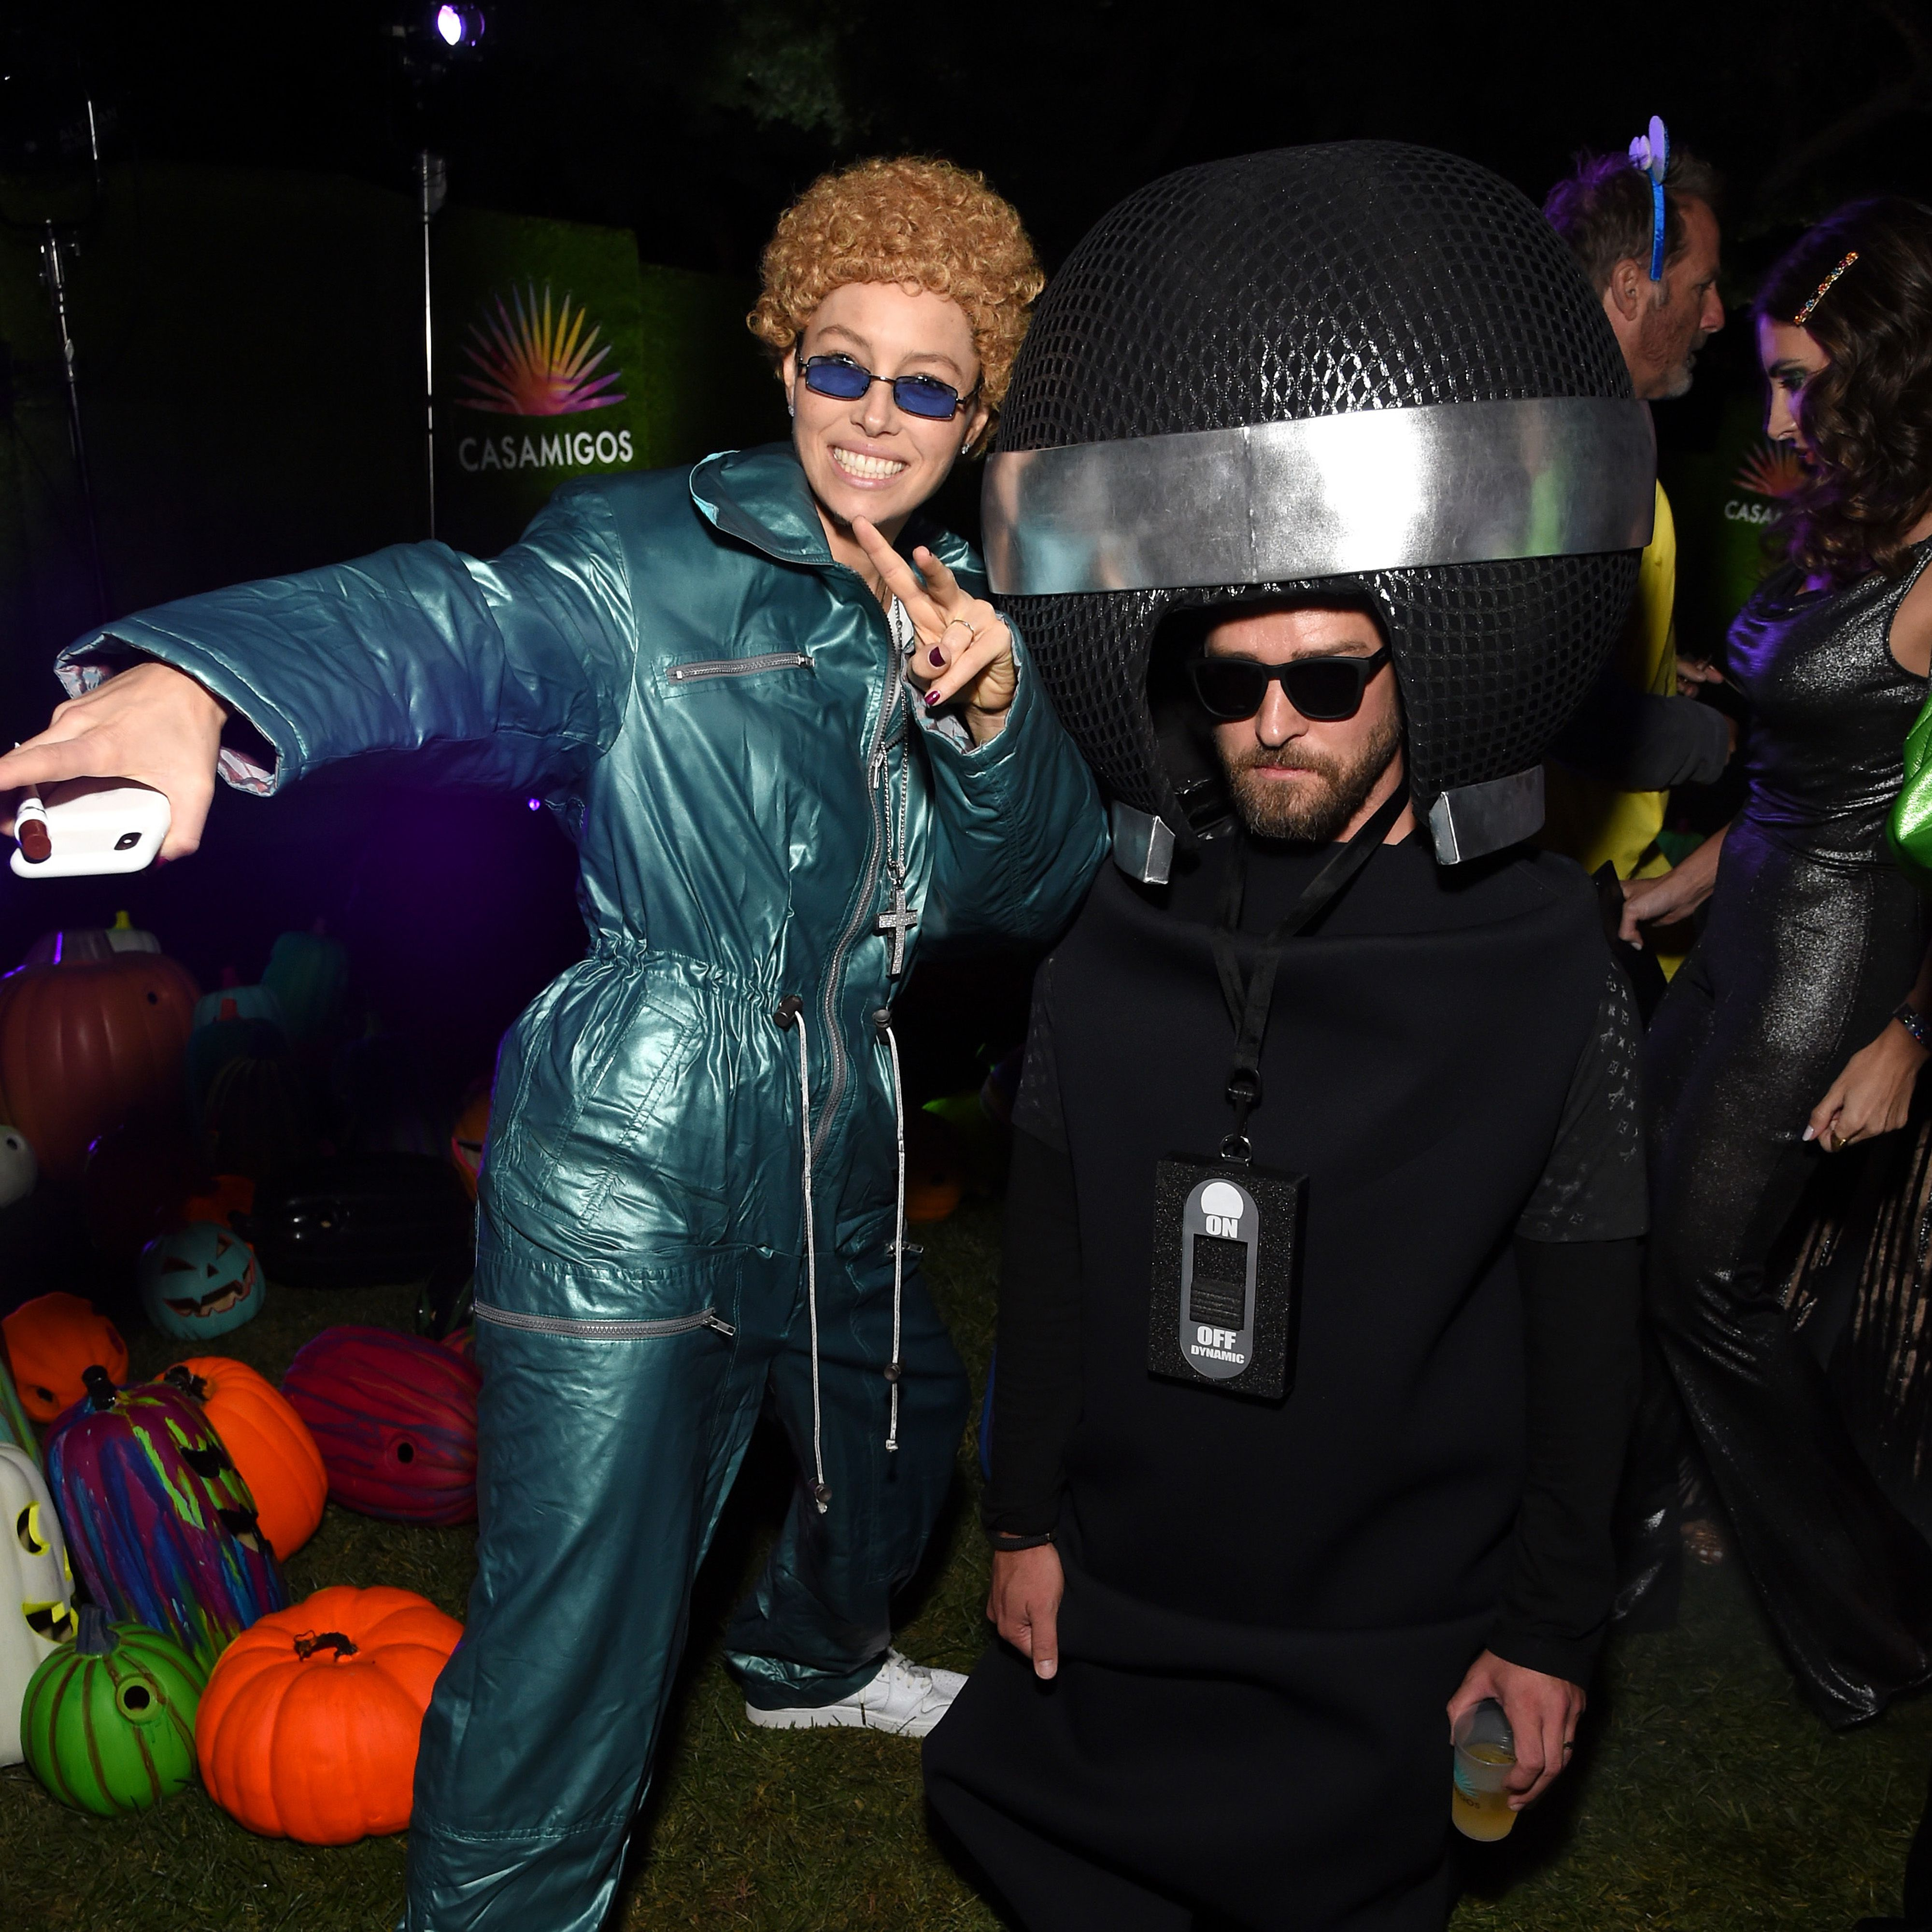 Couple Themed Halloween Costumes.The Best Celebrity Couple Halloween Costumes Of 2019